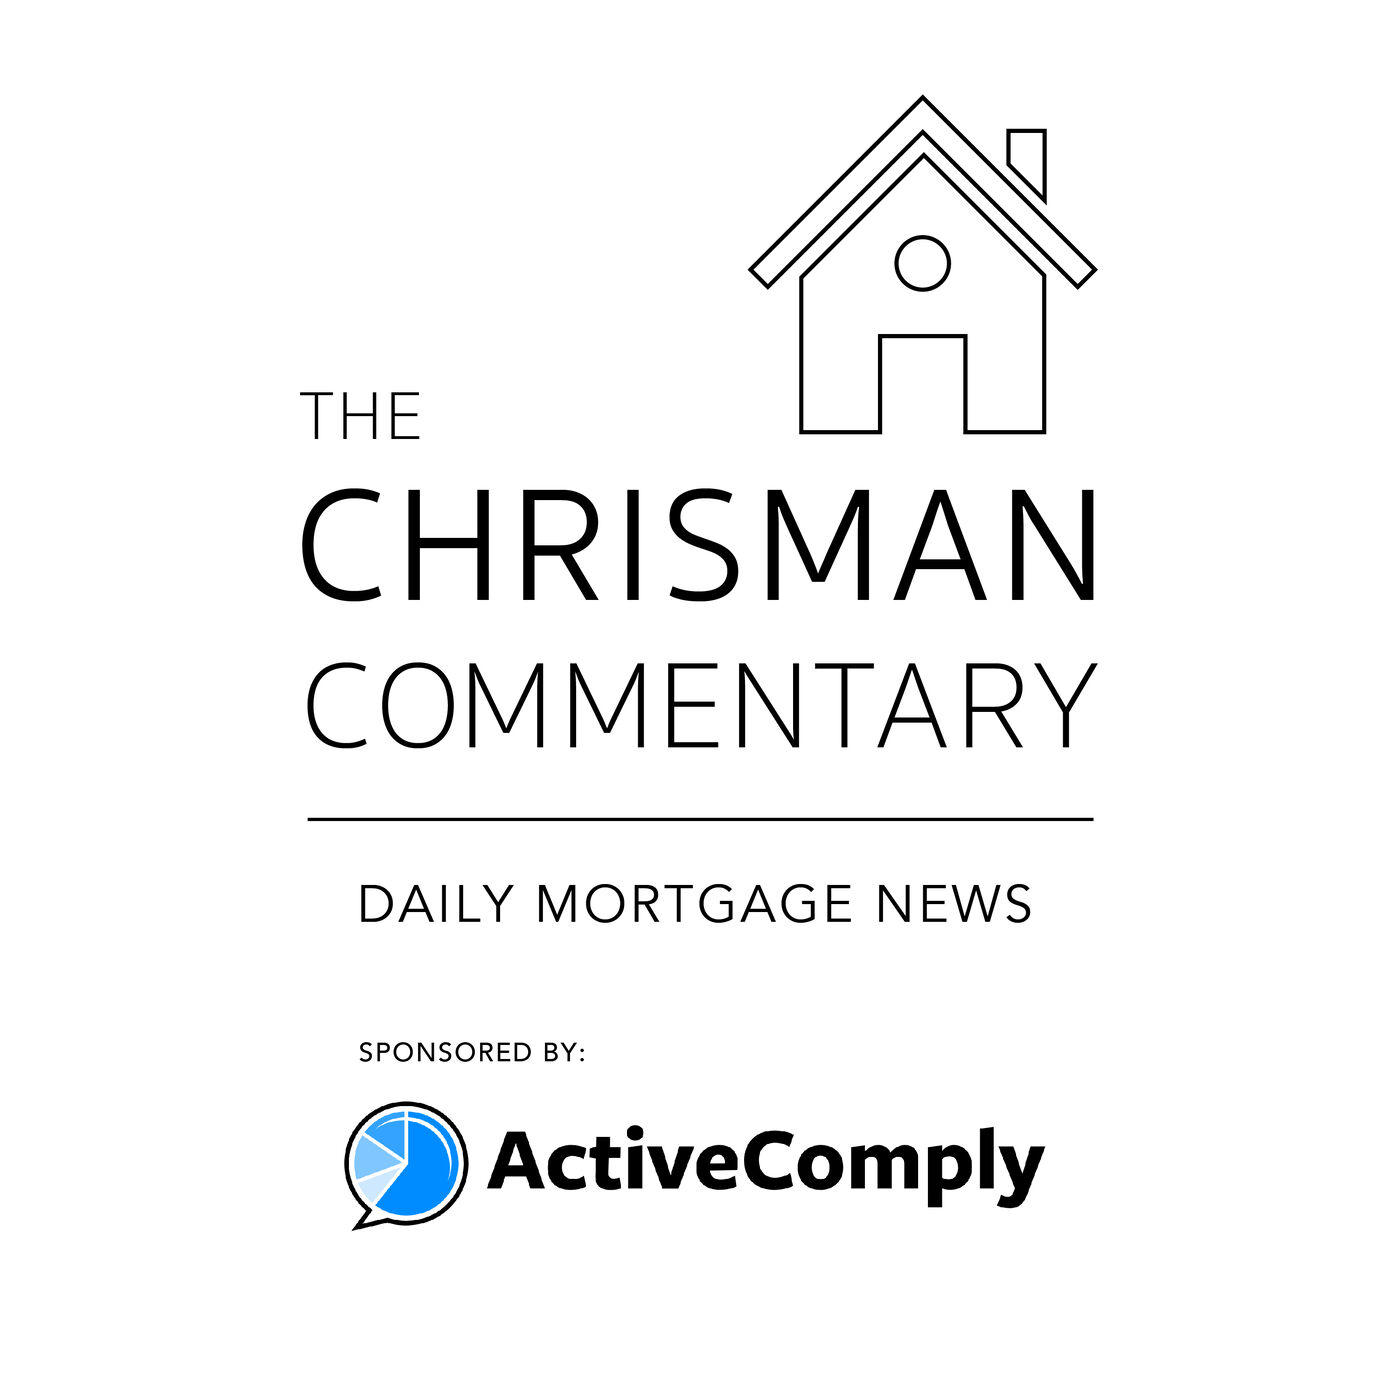 8.26.21 New GSE Focus; Rob Chrisman from the Western Secondary; Q2 GDP Revision